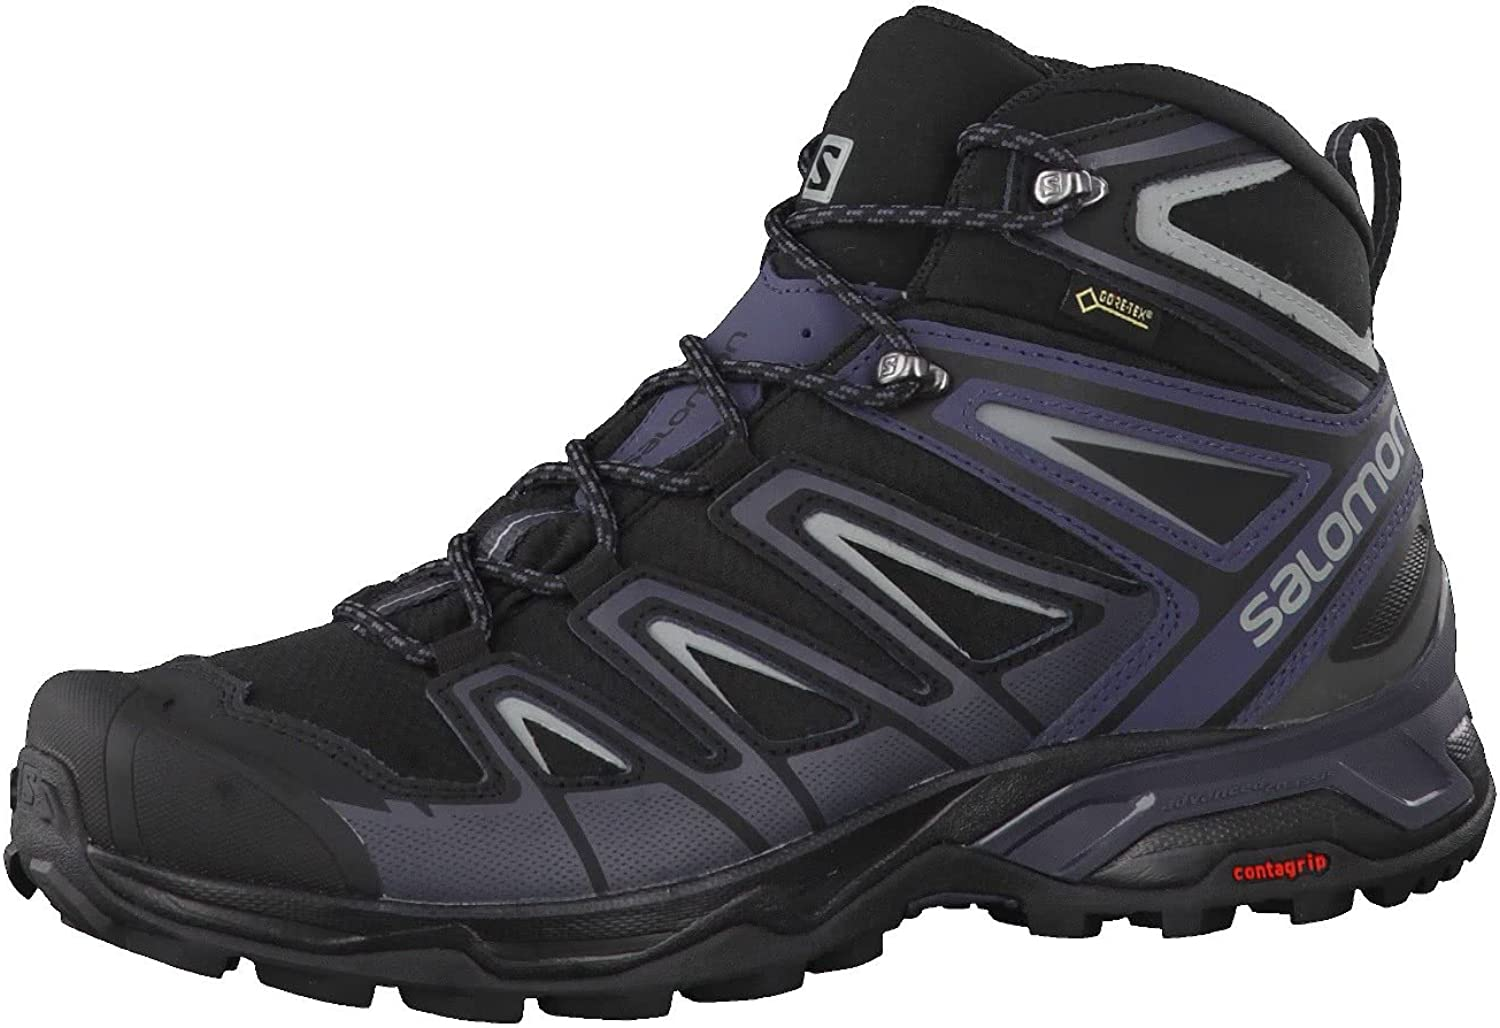 Model name: Salomon Men's X Ultra 3 Mid GTX Hiking Boot